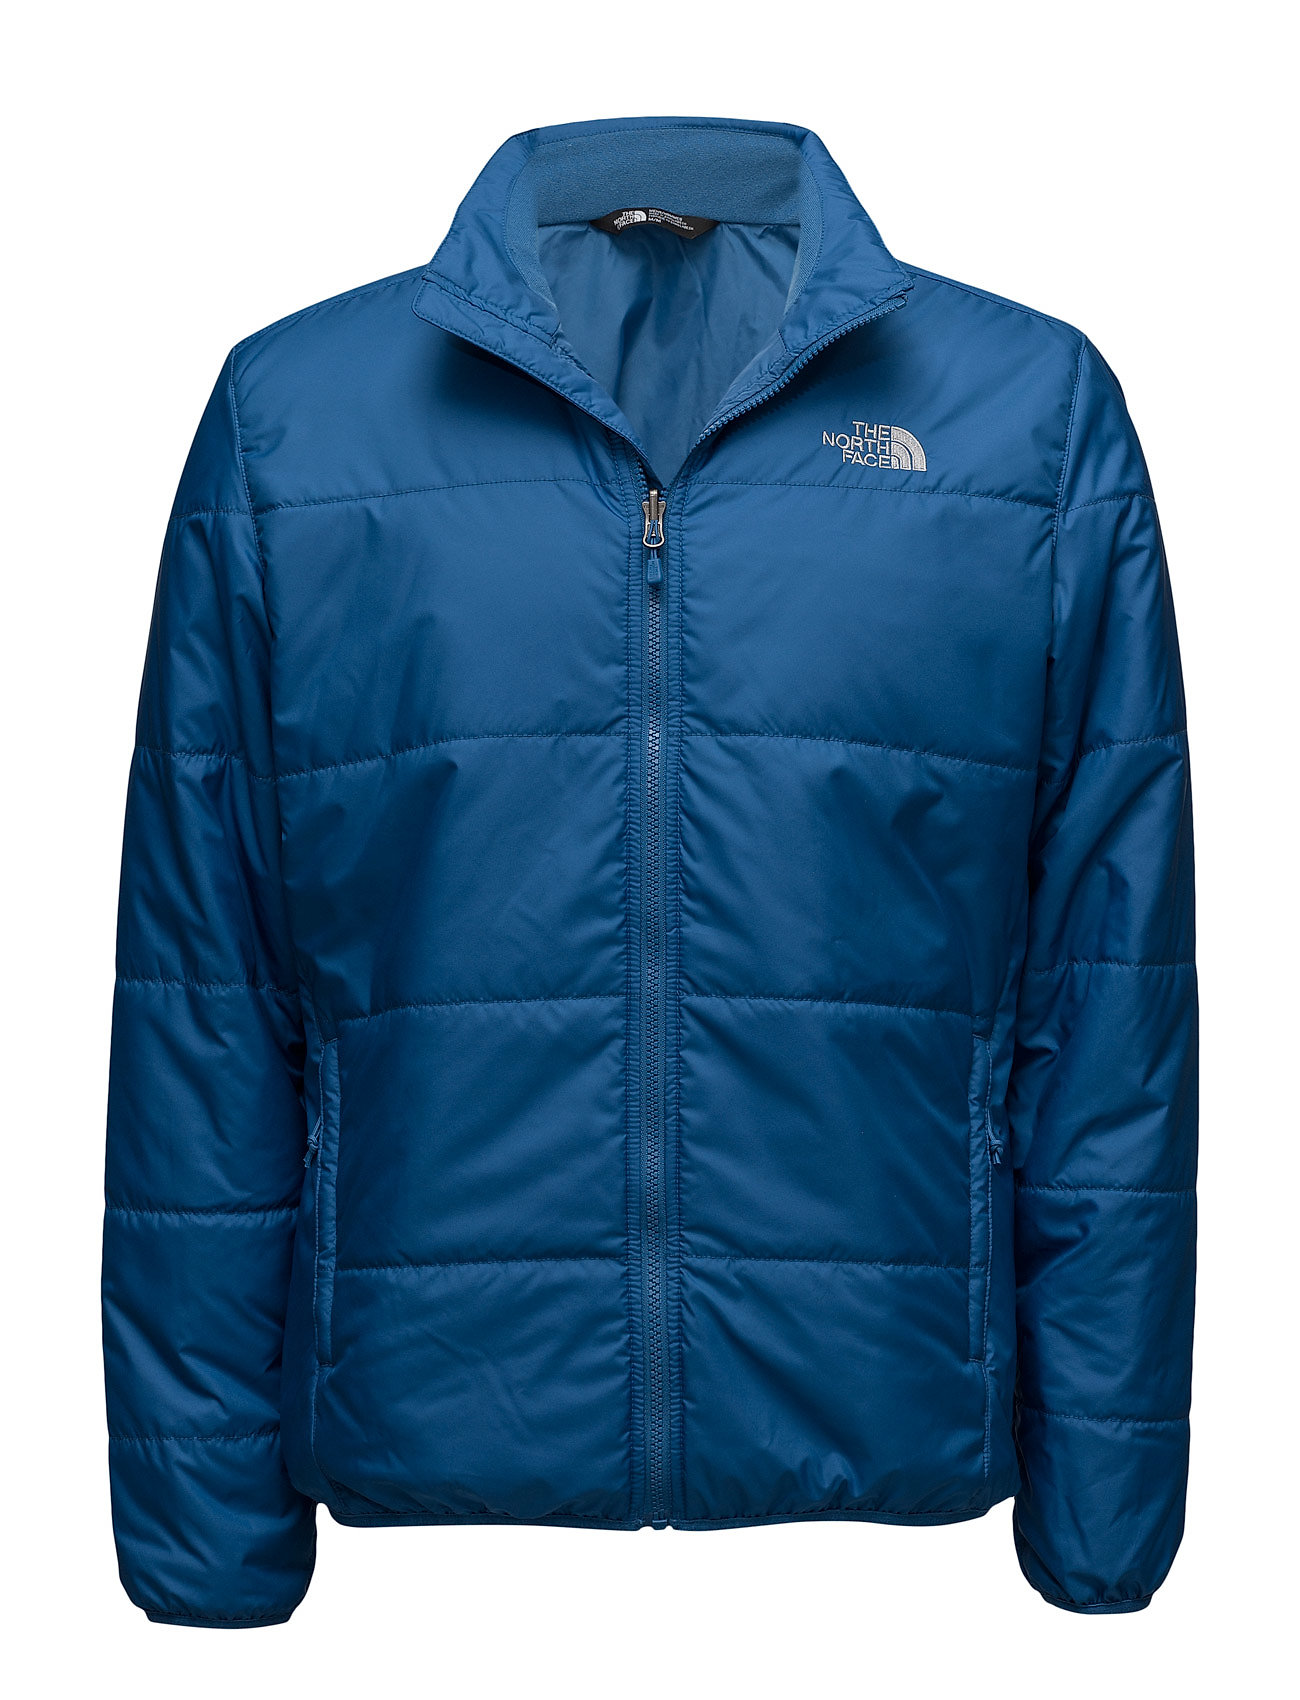 the north face – M waucoba jacket på boozt.com dk